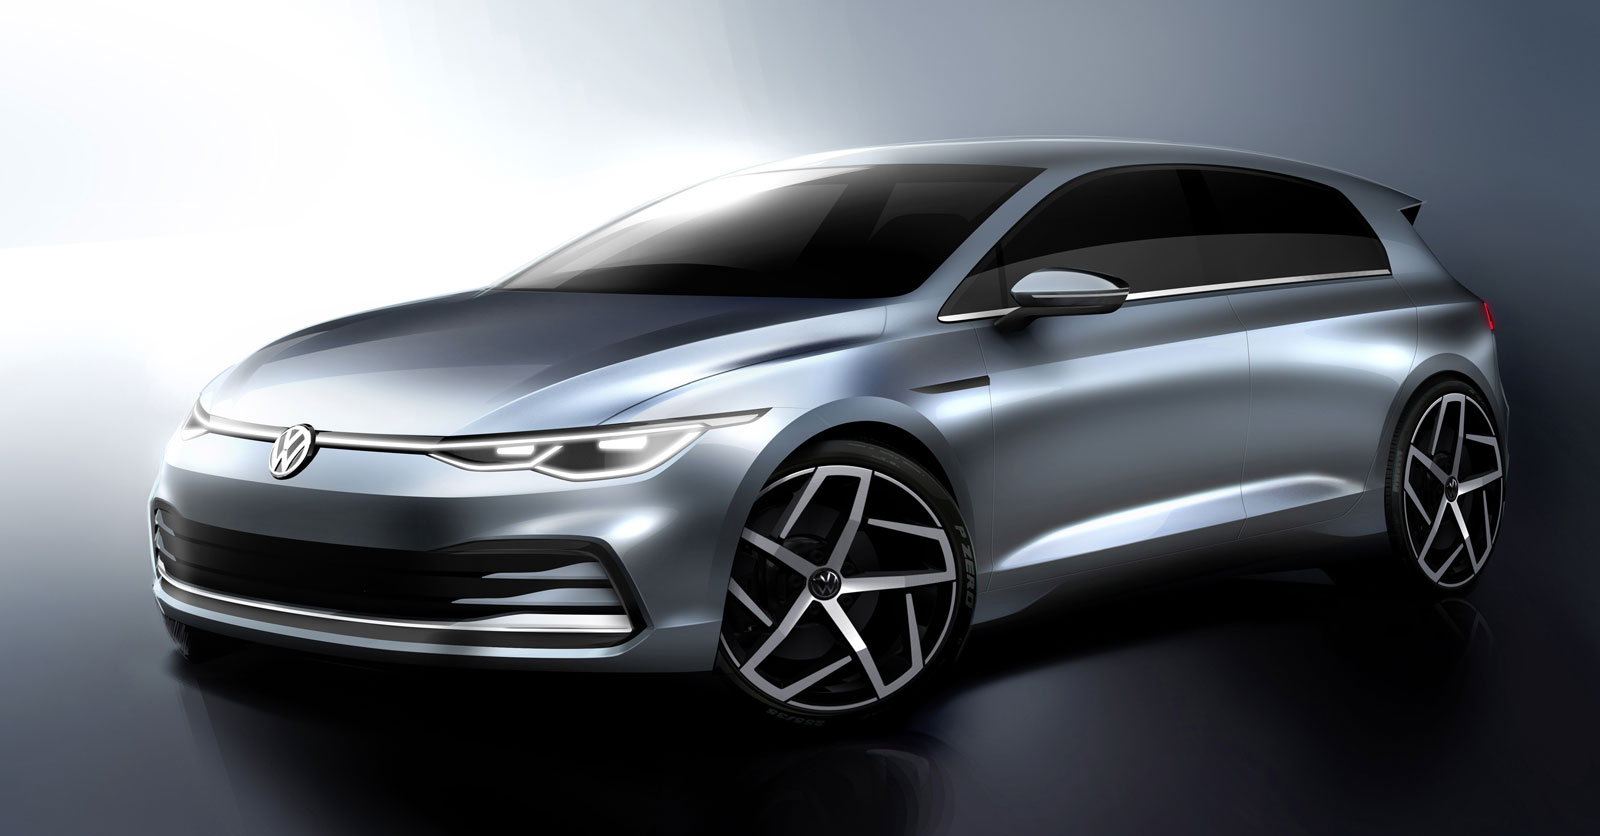 Volkswagen 8th gen Golf Design Sketch Render